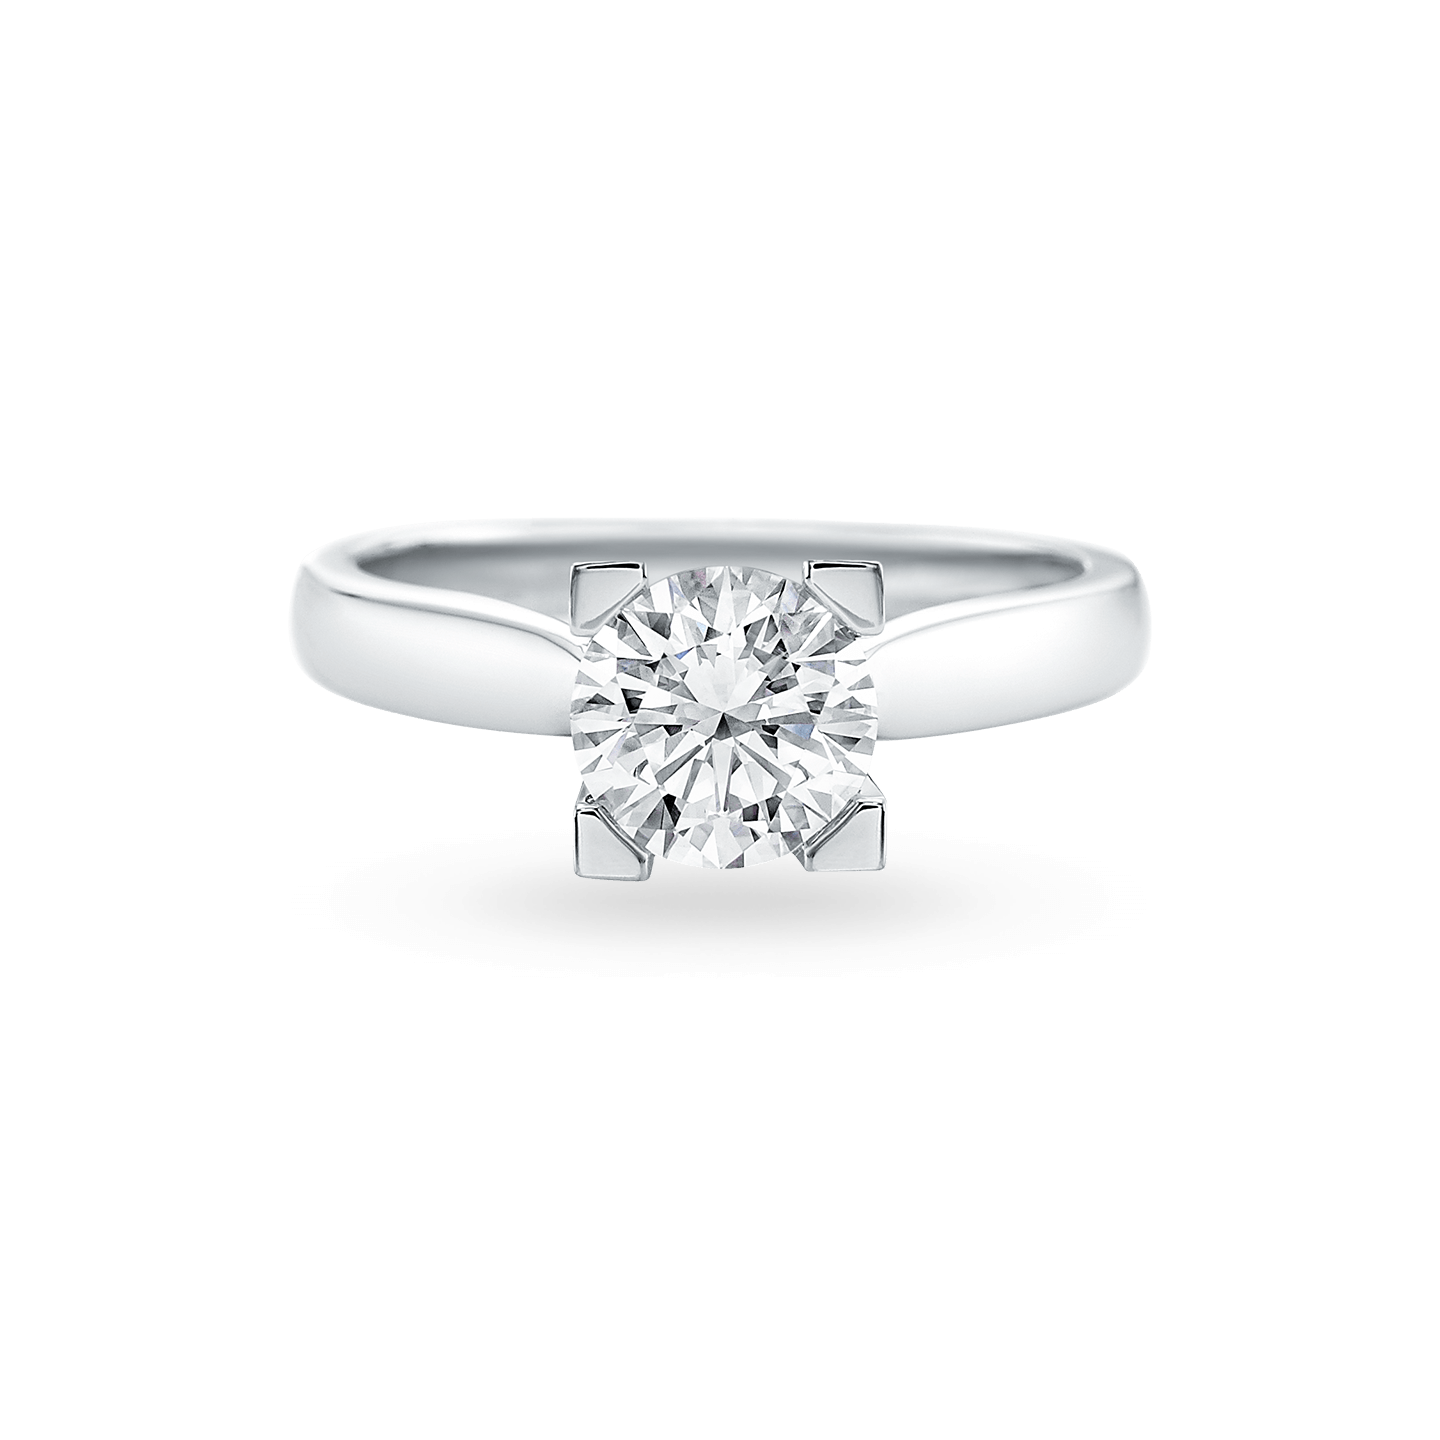 HW Logo Round Brilliant Diamond Micropavé Engagement Ring, Product Image 1